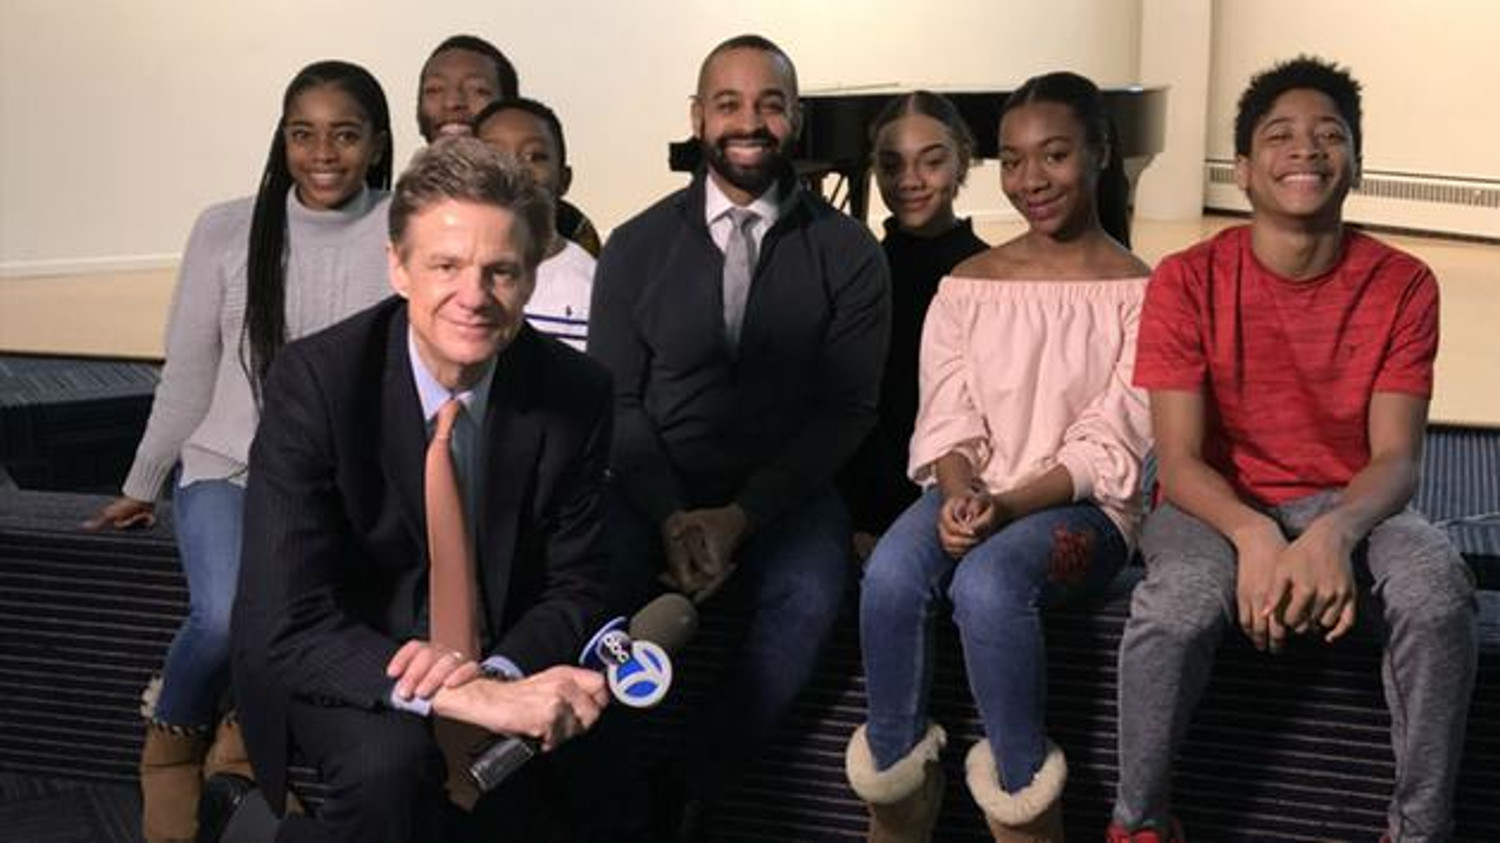 ABC7 News - More than just a box office hit: Harlem students share why 'Black Panther' is cultural phenomenon (February 24, 2018)